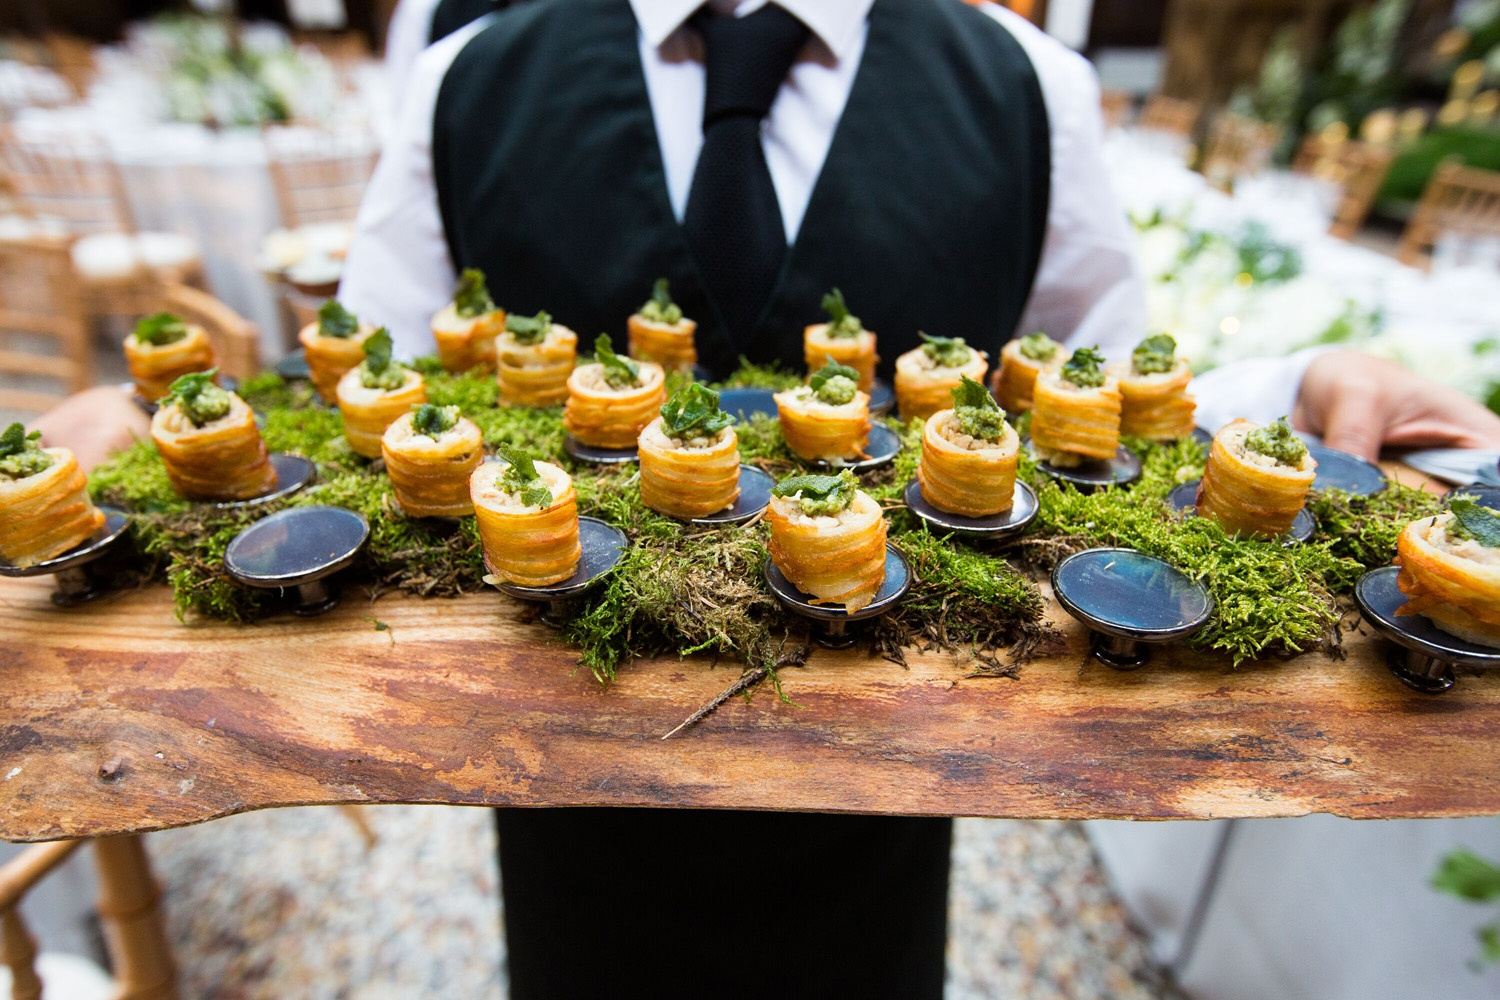 Littleton-Rose-Natural-History-Museum-London-Wedding-Planners-Canapes.jpg